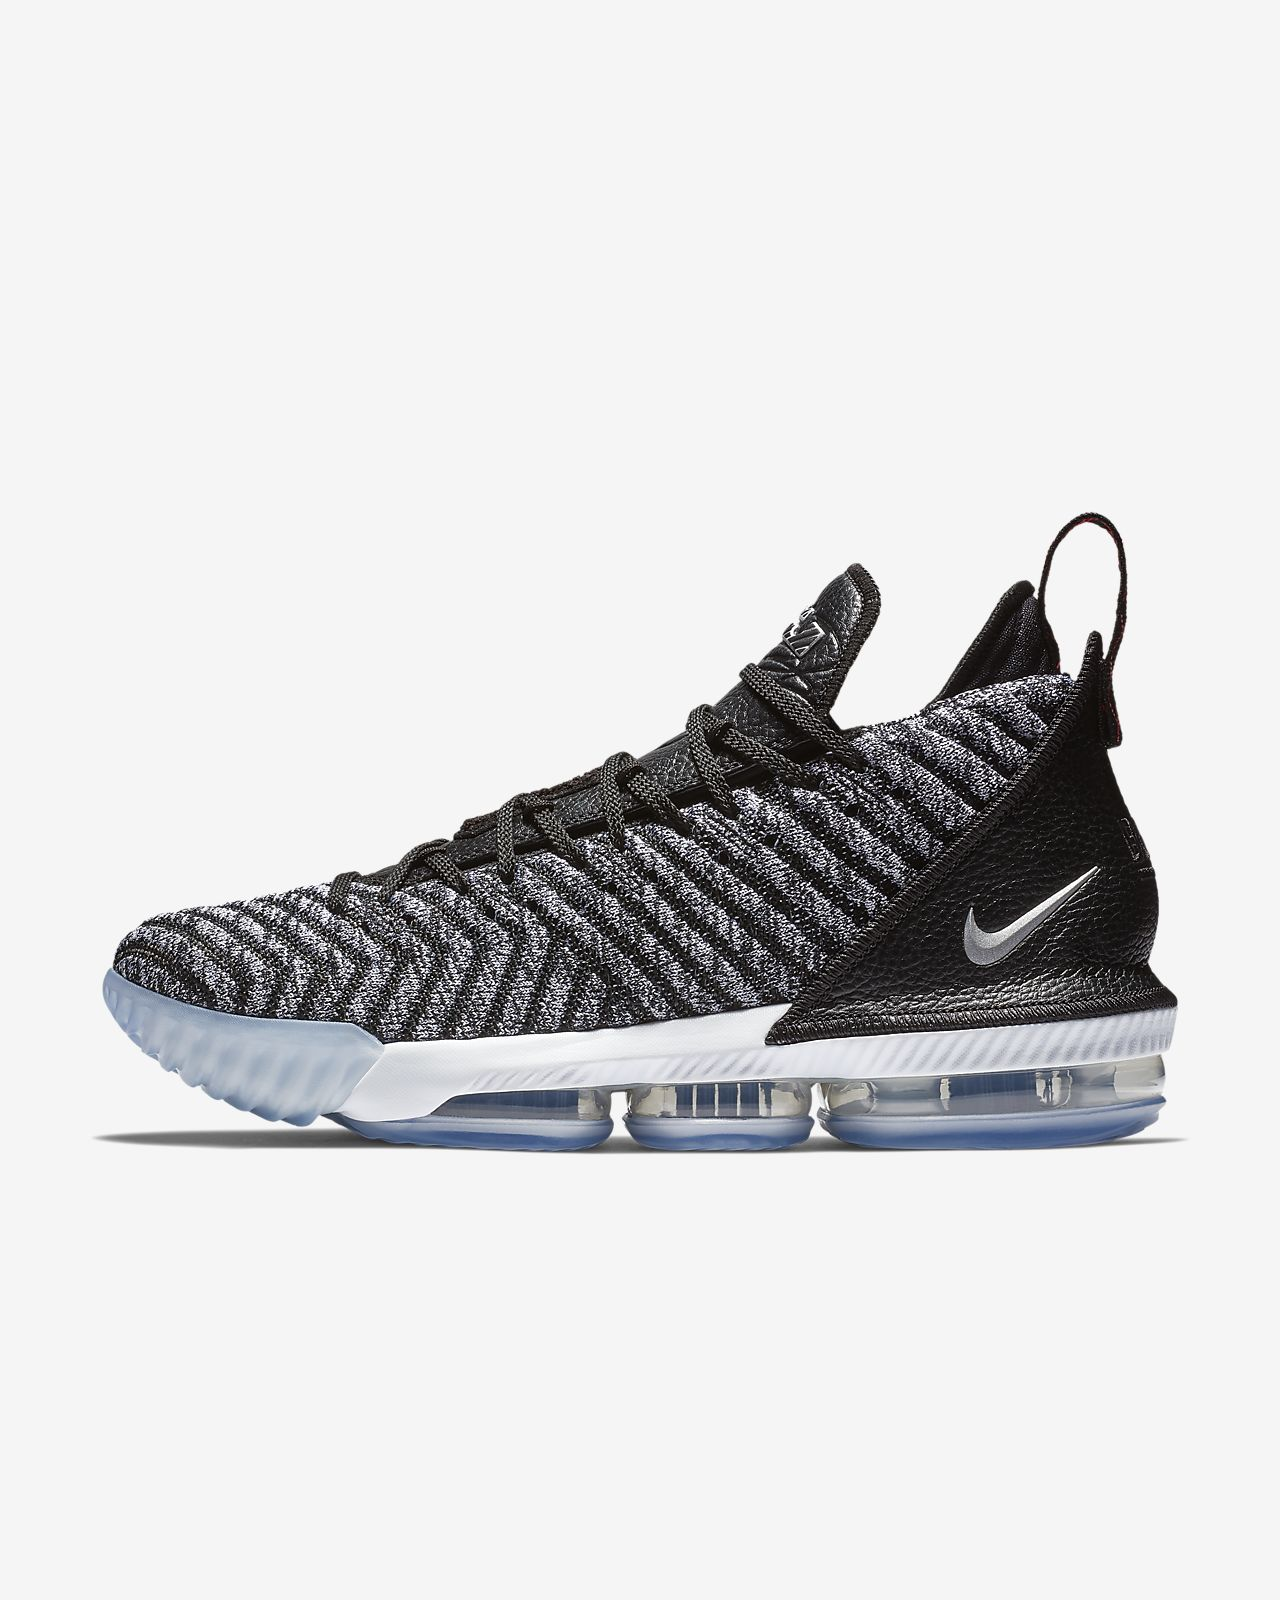 new products f953a 6f349 Basketball Shoe. LeBron 16